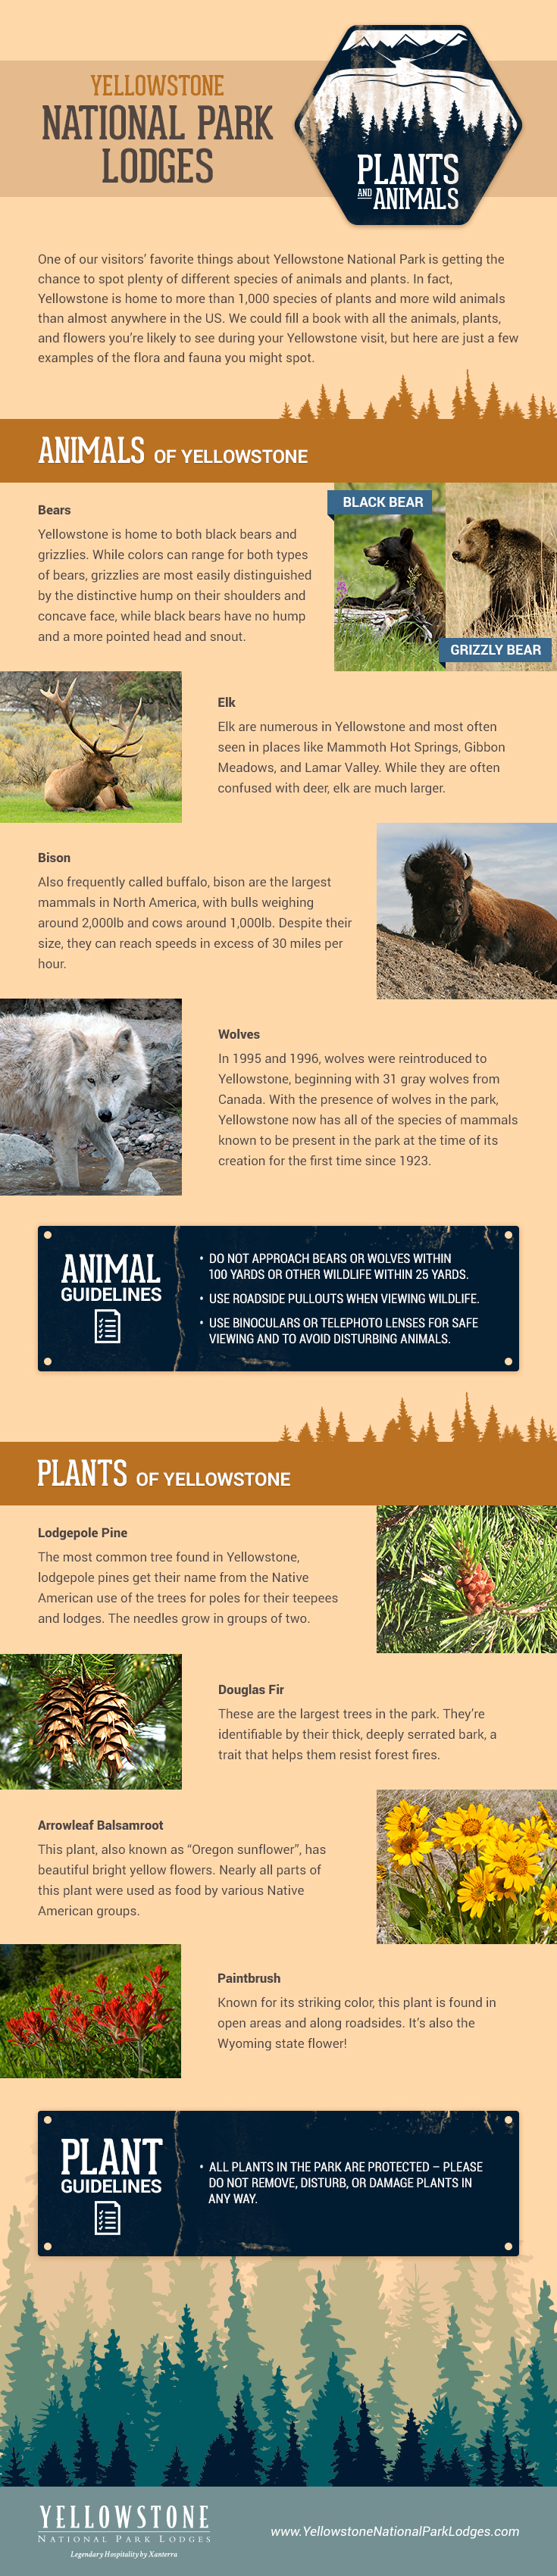 Yellowstone National Park Plants and Animals Infographic